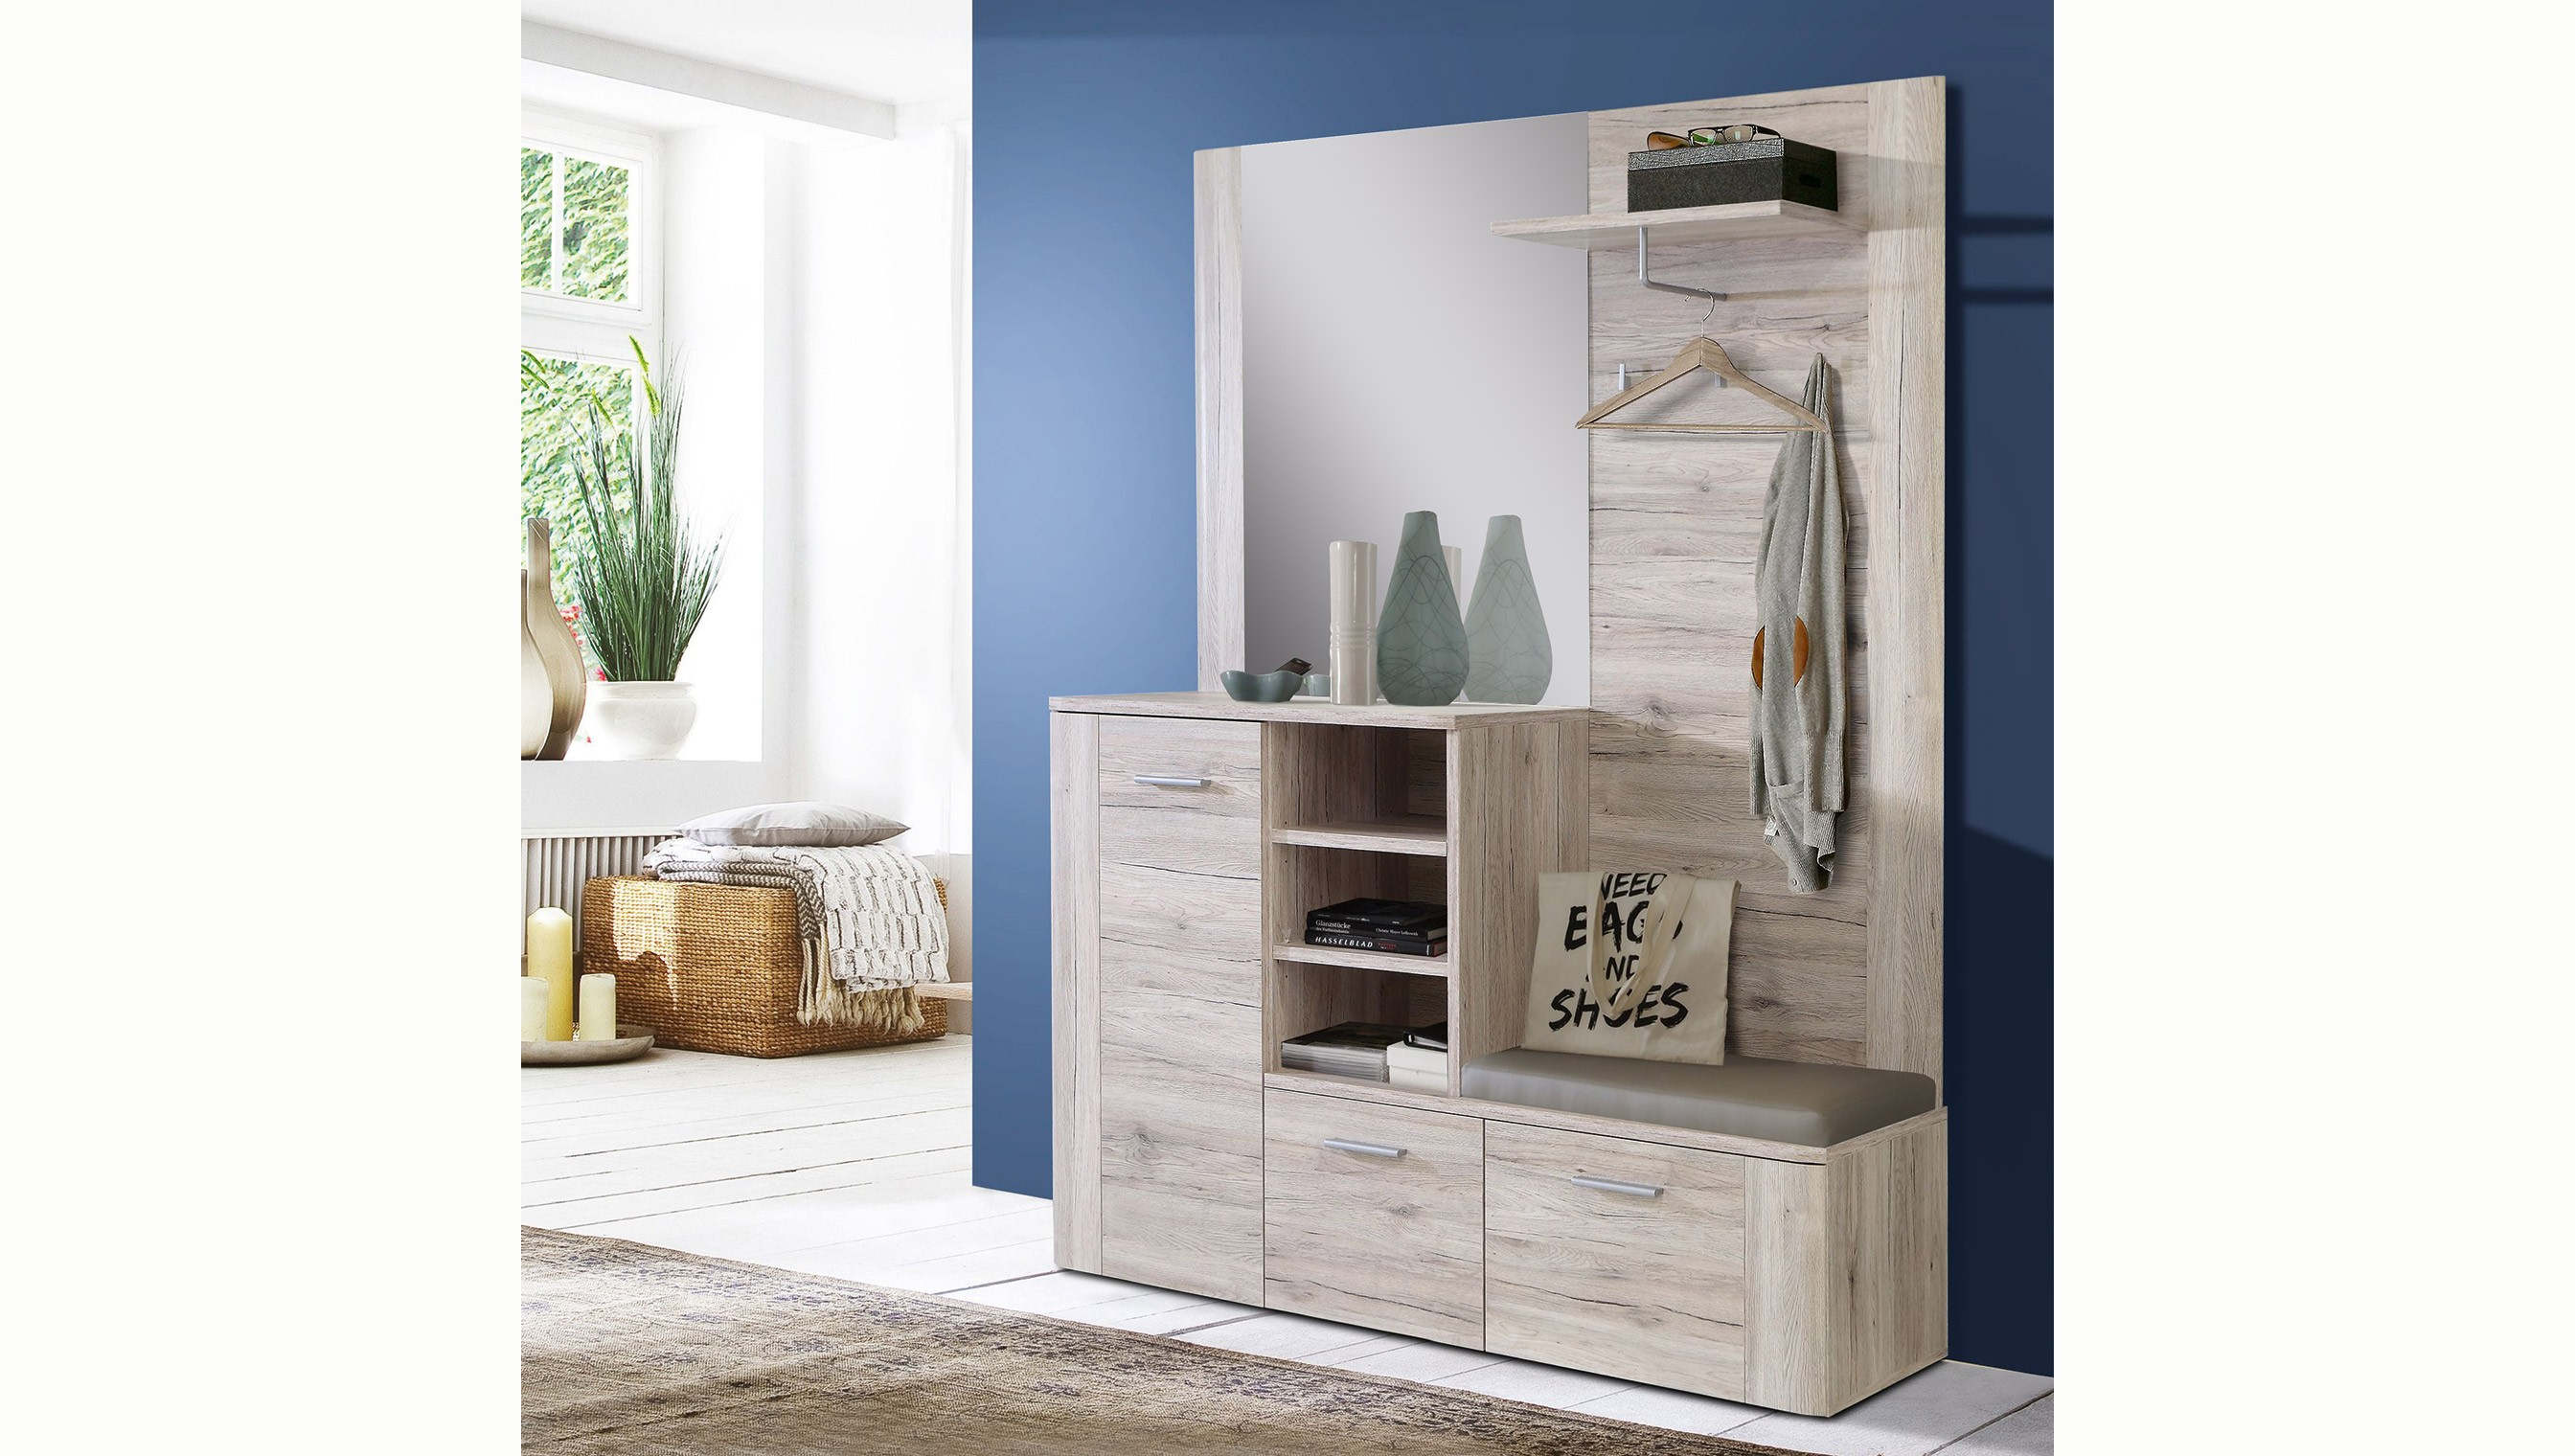 garderobe best usm haller garderobe mm breit mit klapptre with garderobe garderobe u. Black Bedroom Furniture Sets. Home Design Ideas